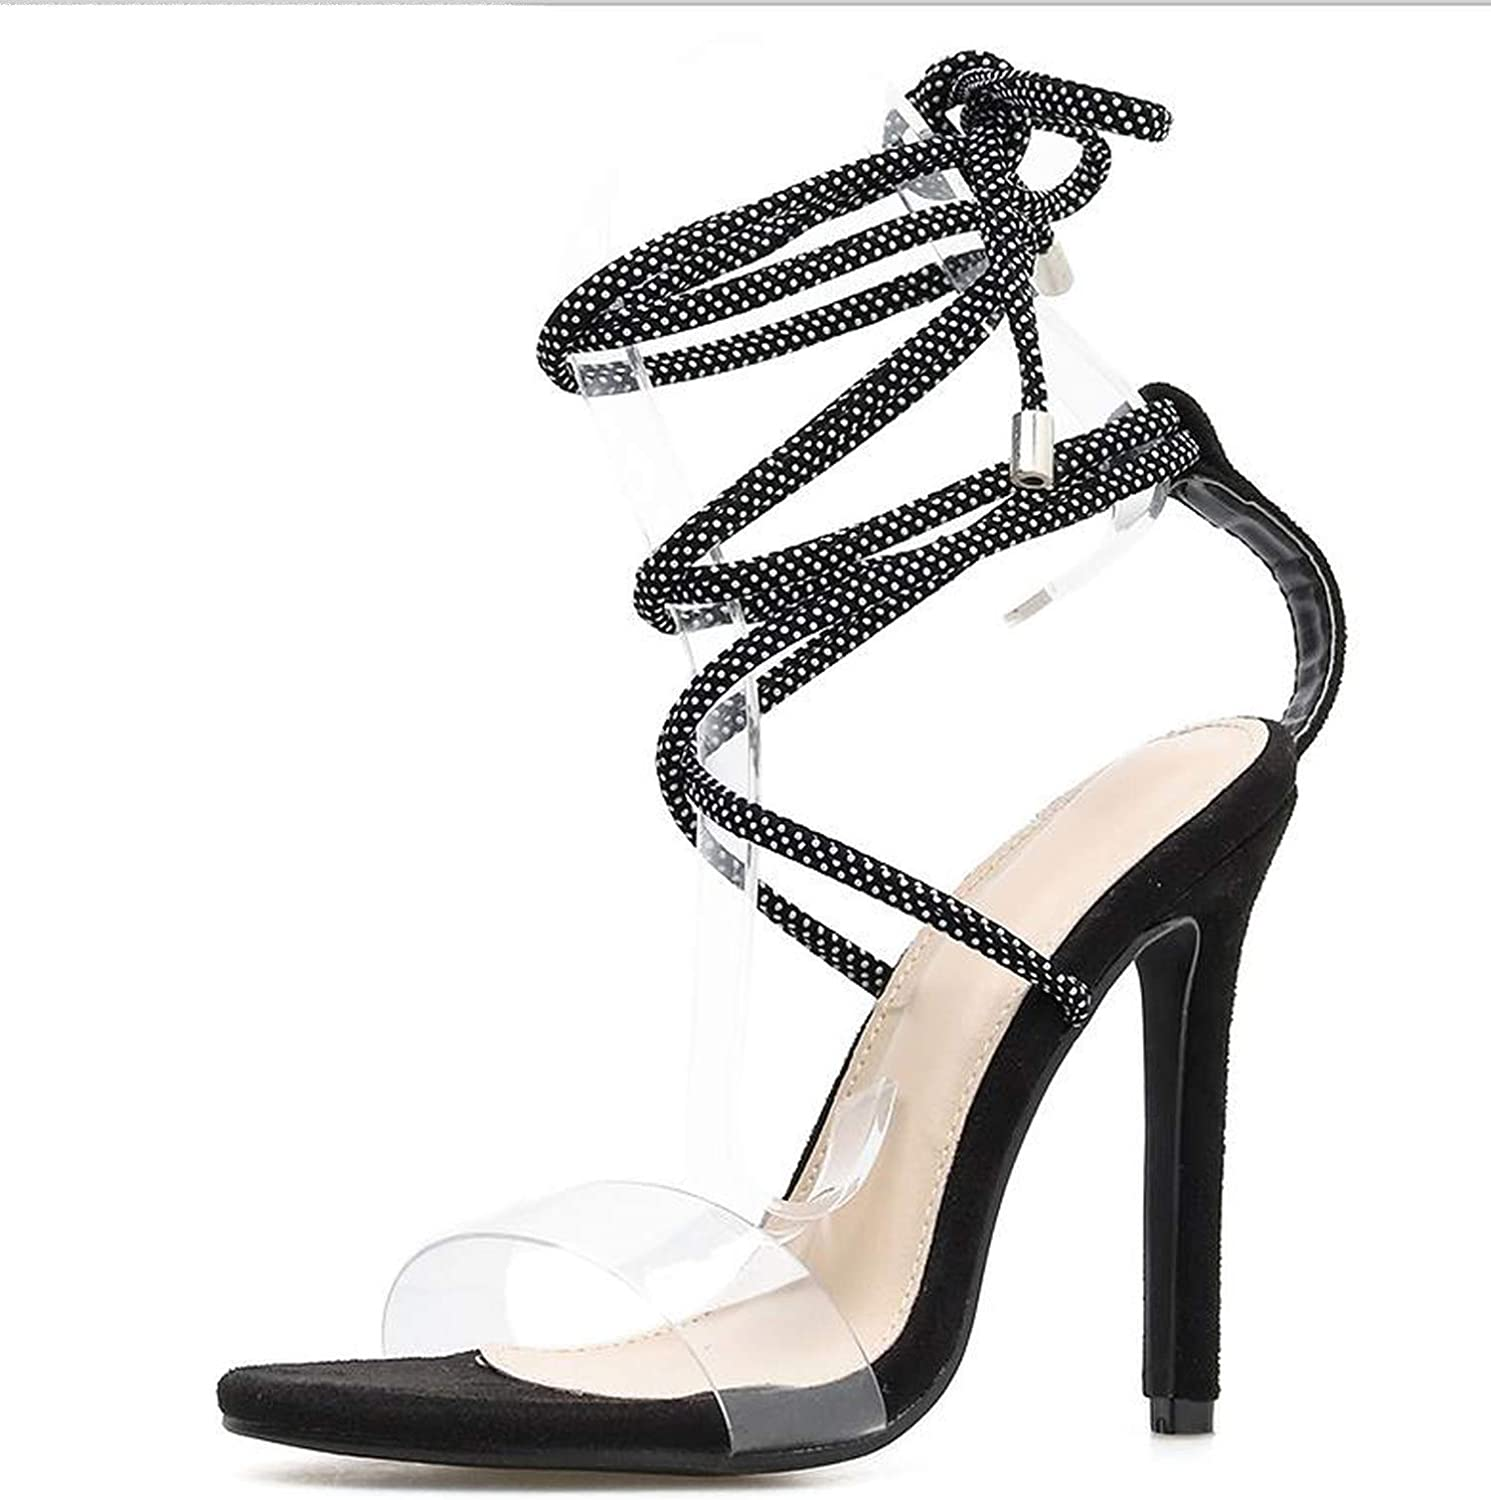 Summer High Heels Women Gladiator Sandals Cross-Tied Lace-Up Sexy Thin Heel Sandals Lady shoes Black